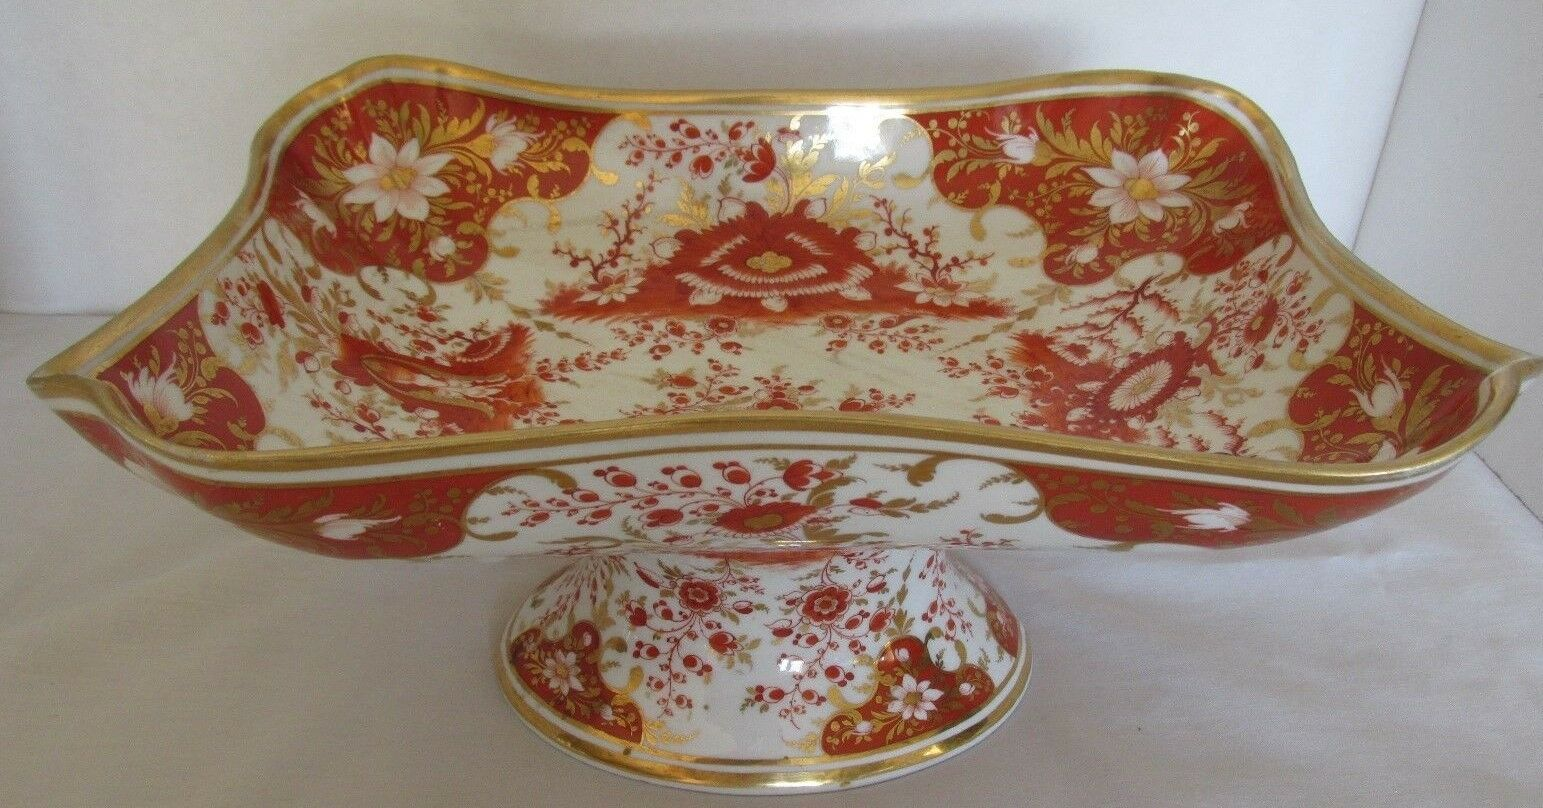 ANTIQUE CHAMBERLAINS WORCSTER GOLD ORANGE FLORAL 10 5/8″D X 5 1/2″H PDSTLD BOWL